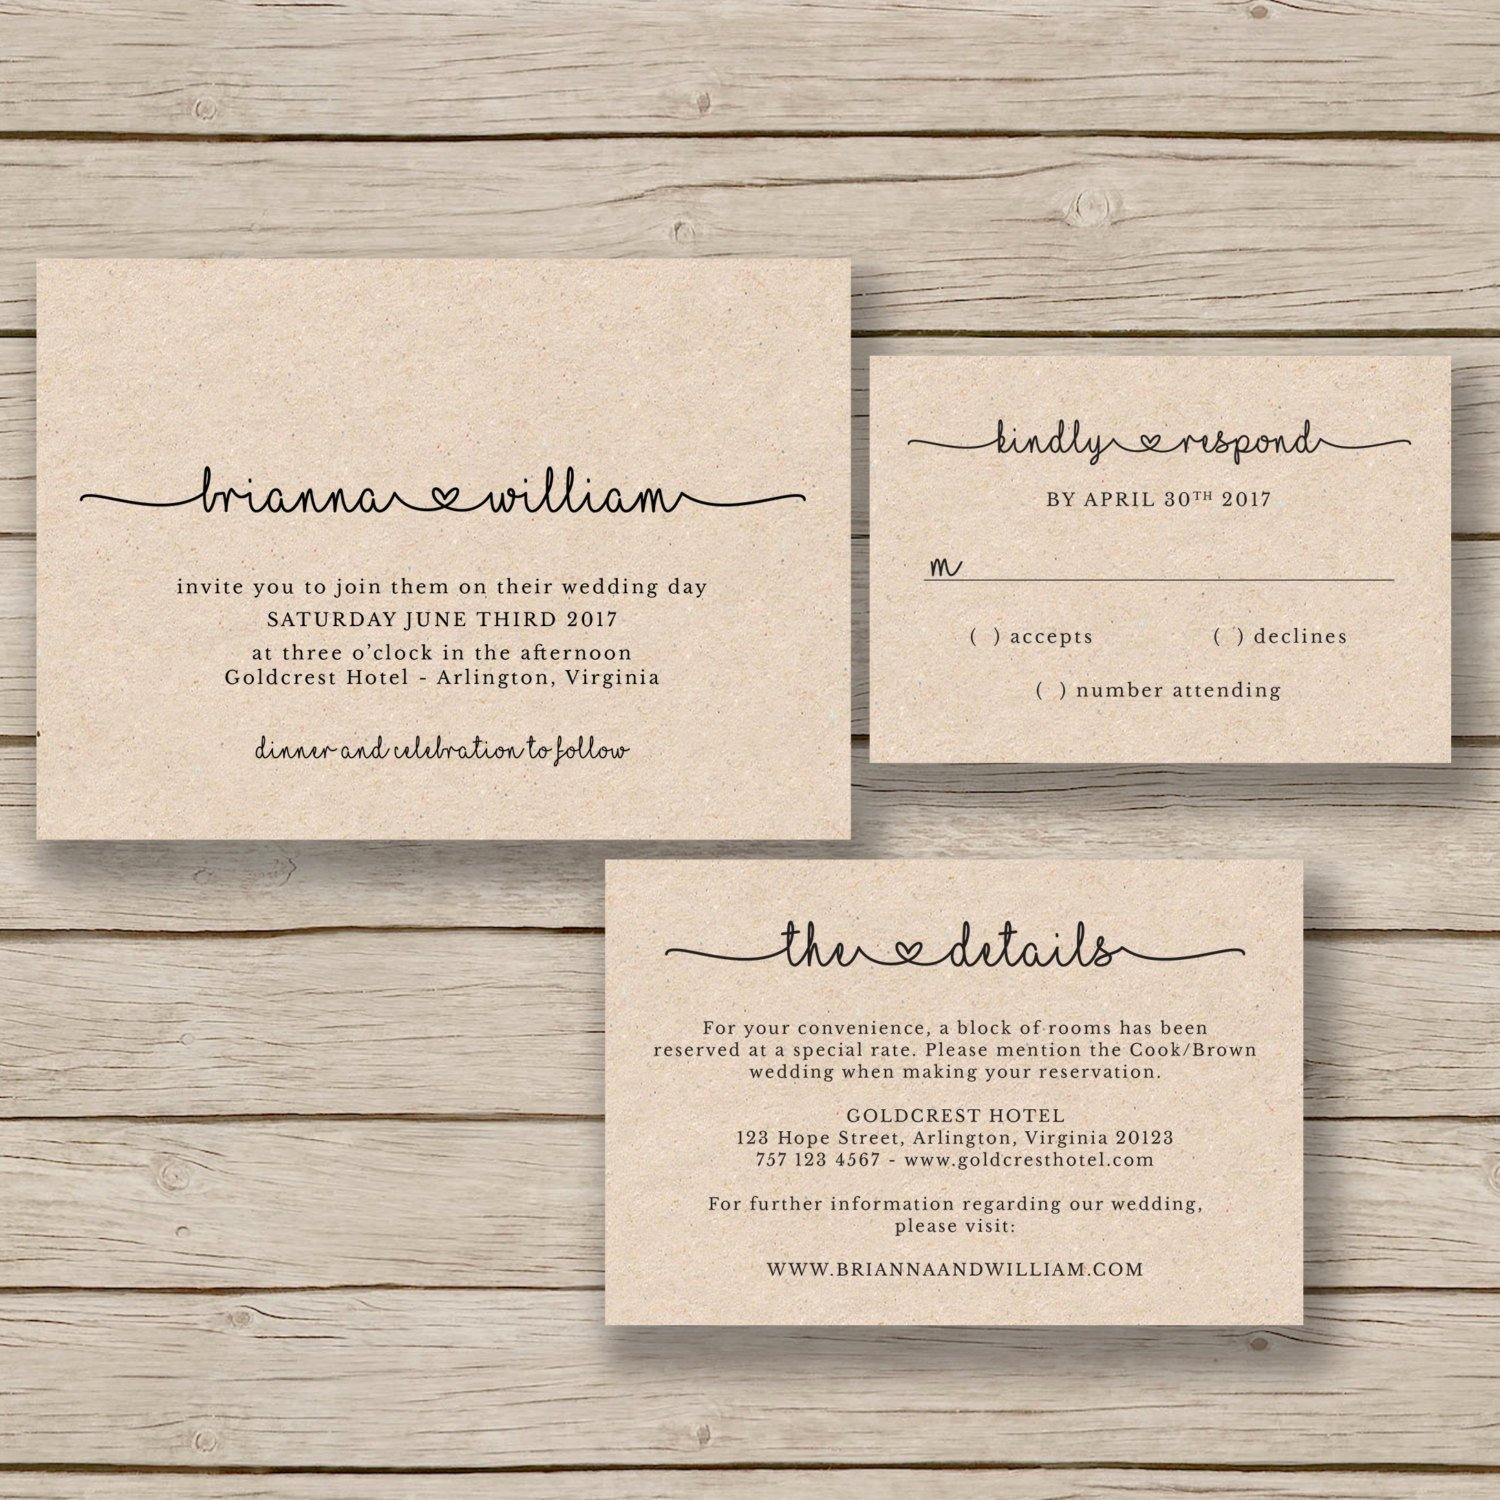 Rustic Wedding Invitation Templates Lovely Wedding Invitation Template Rustic Wedding Printable